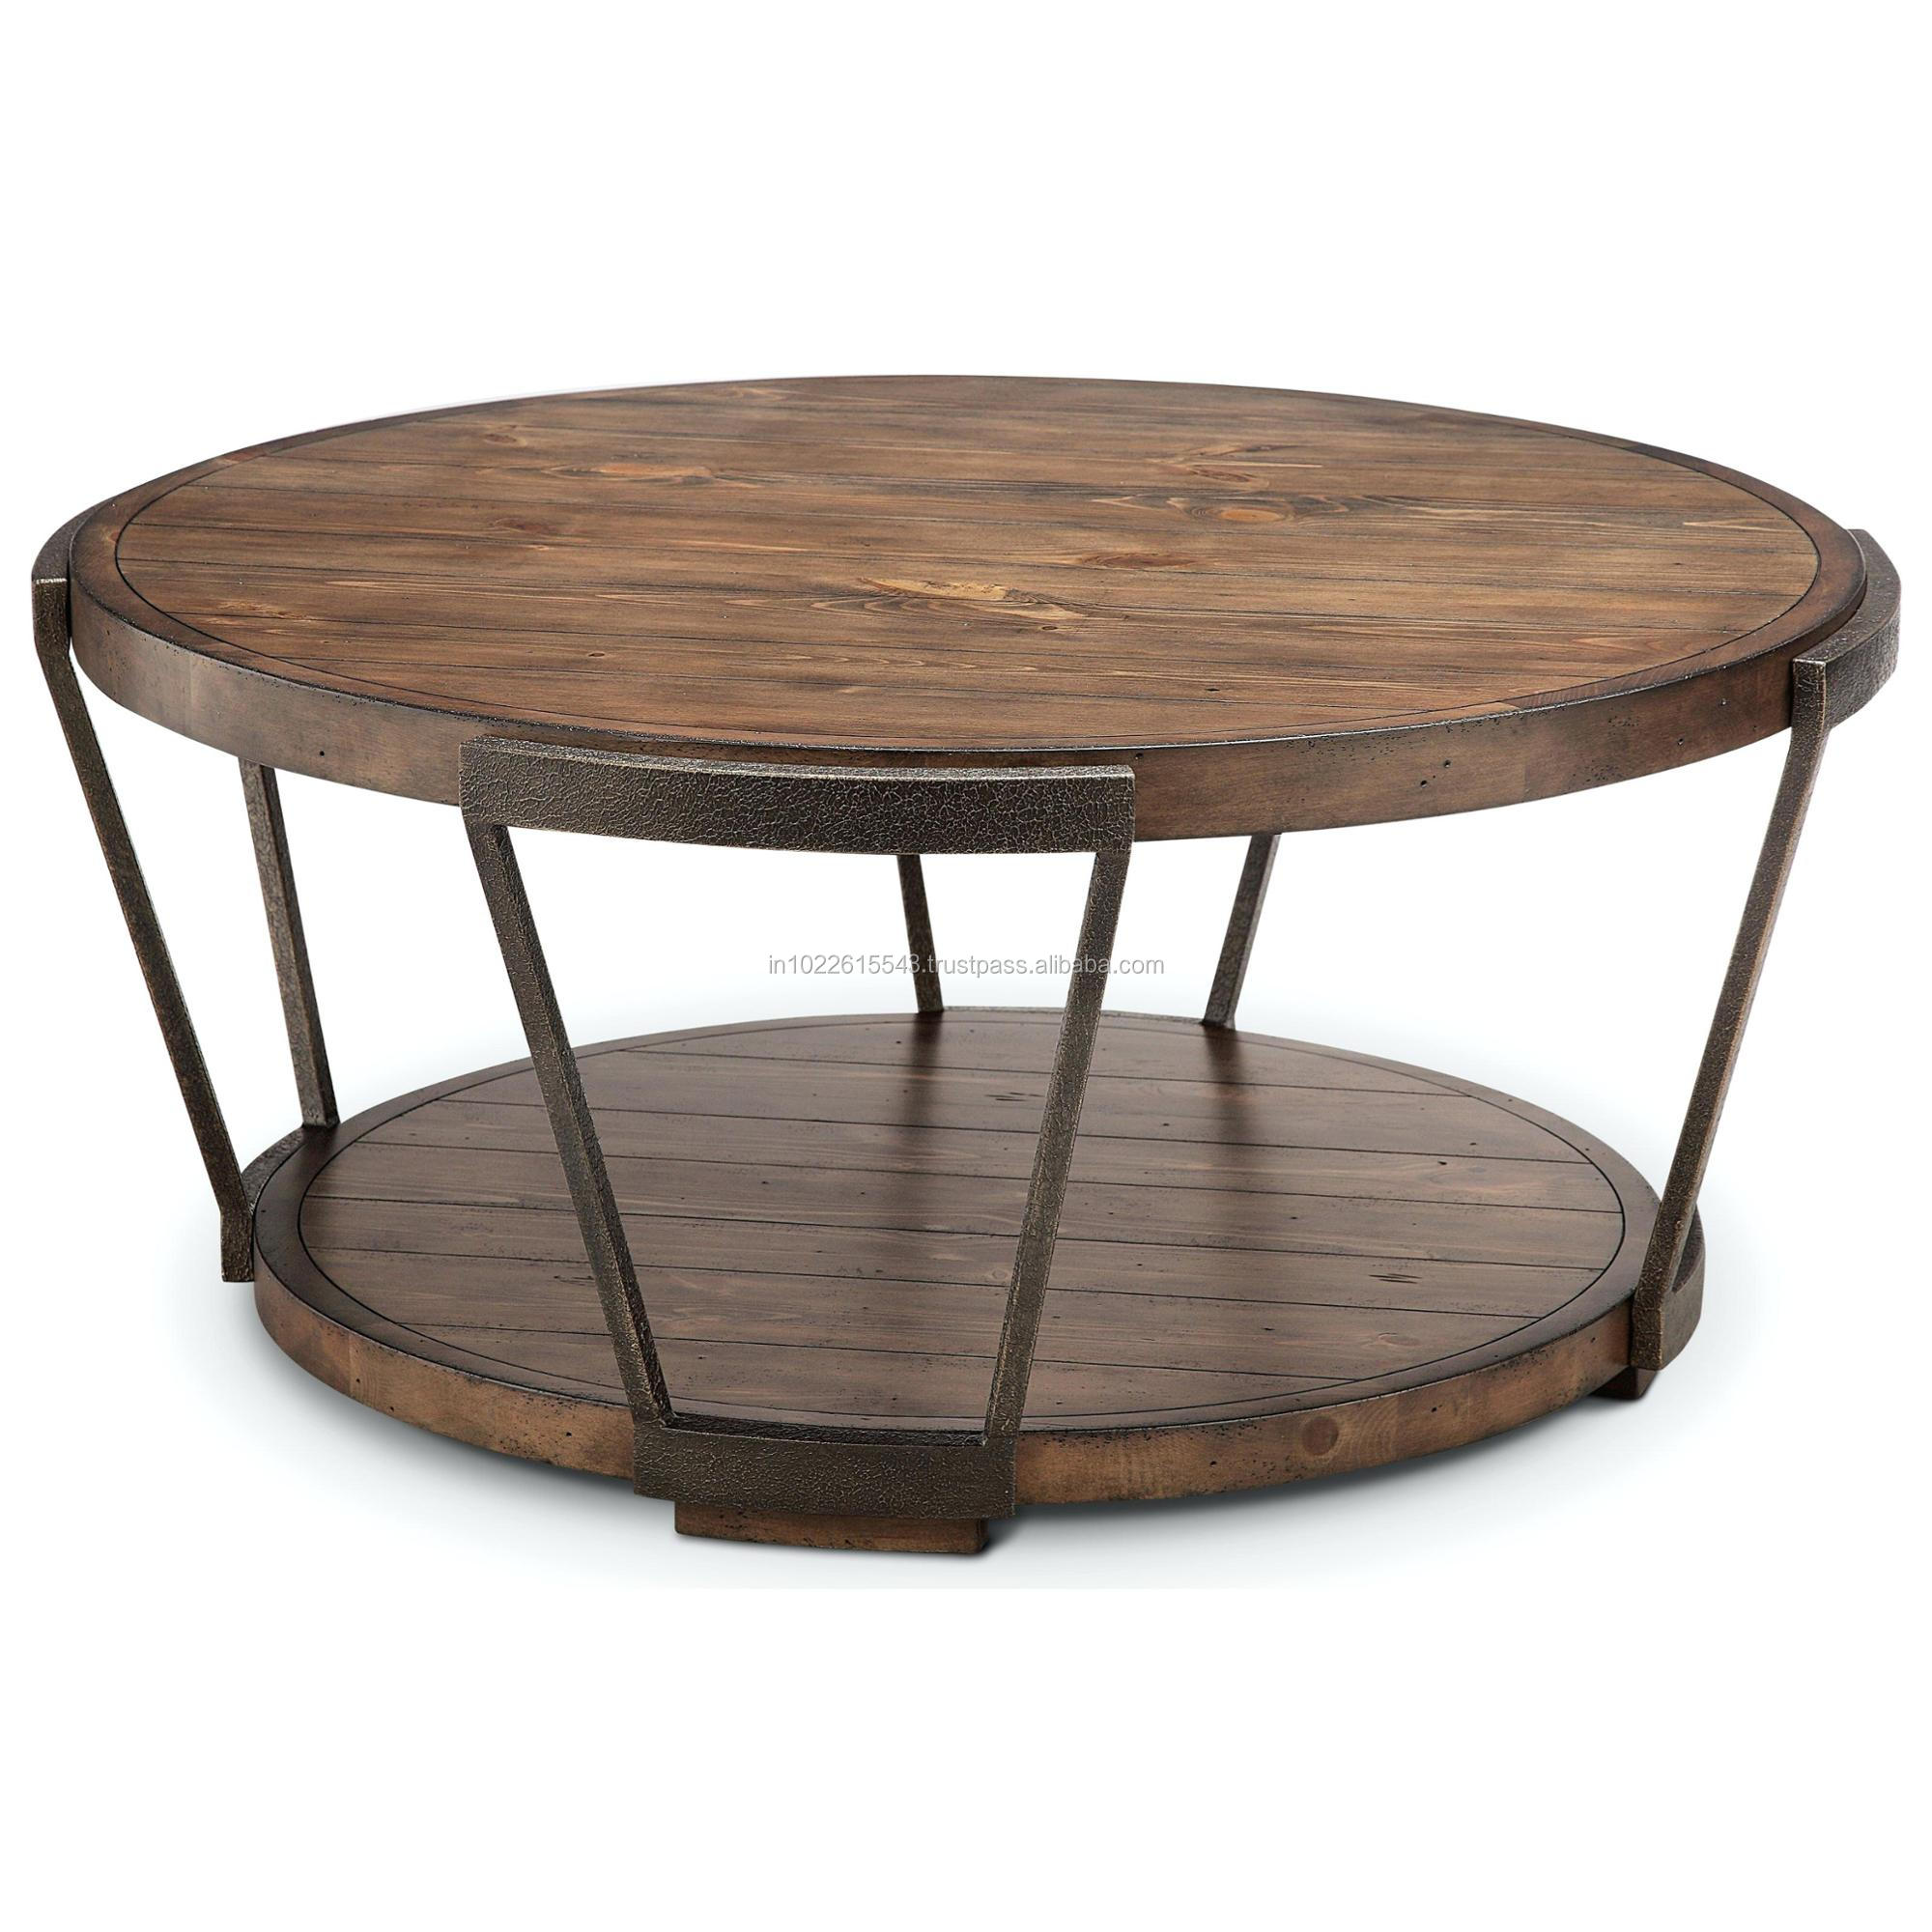 Vintage Metal Coffee Table Center Reclaimed Wood Round